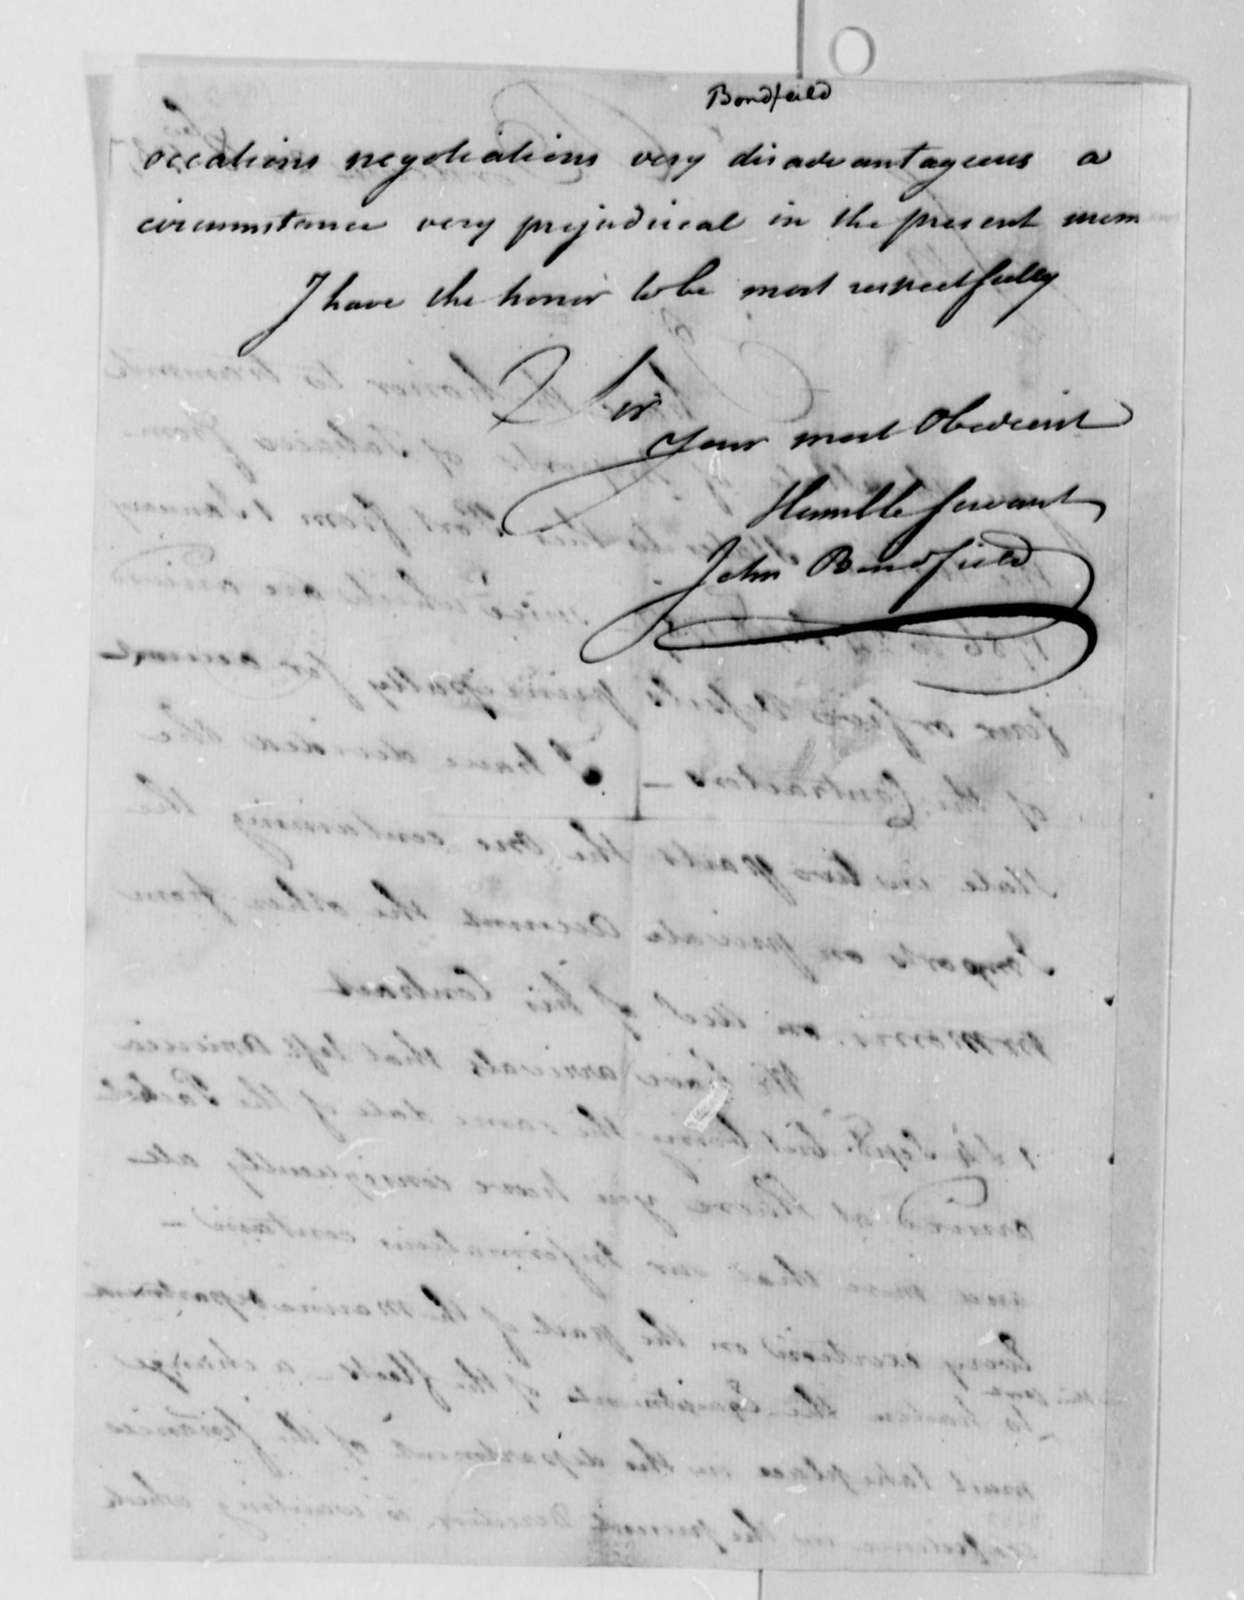 John Bondfield to Thomas Jefferson, October 20, 1787, with List of Tobacco Imports at Bordeaux, France